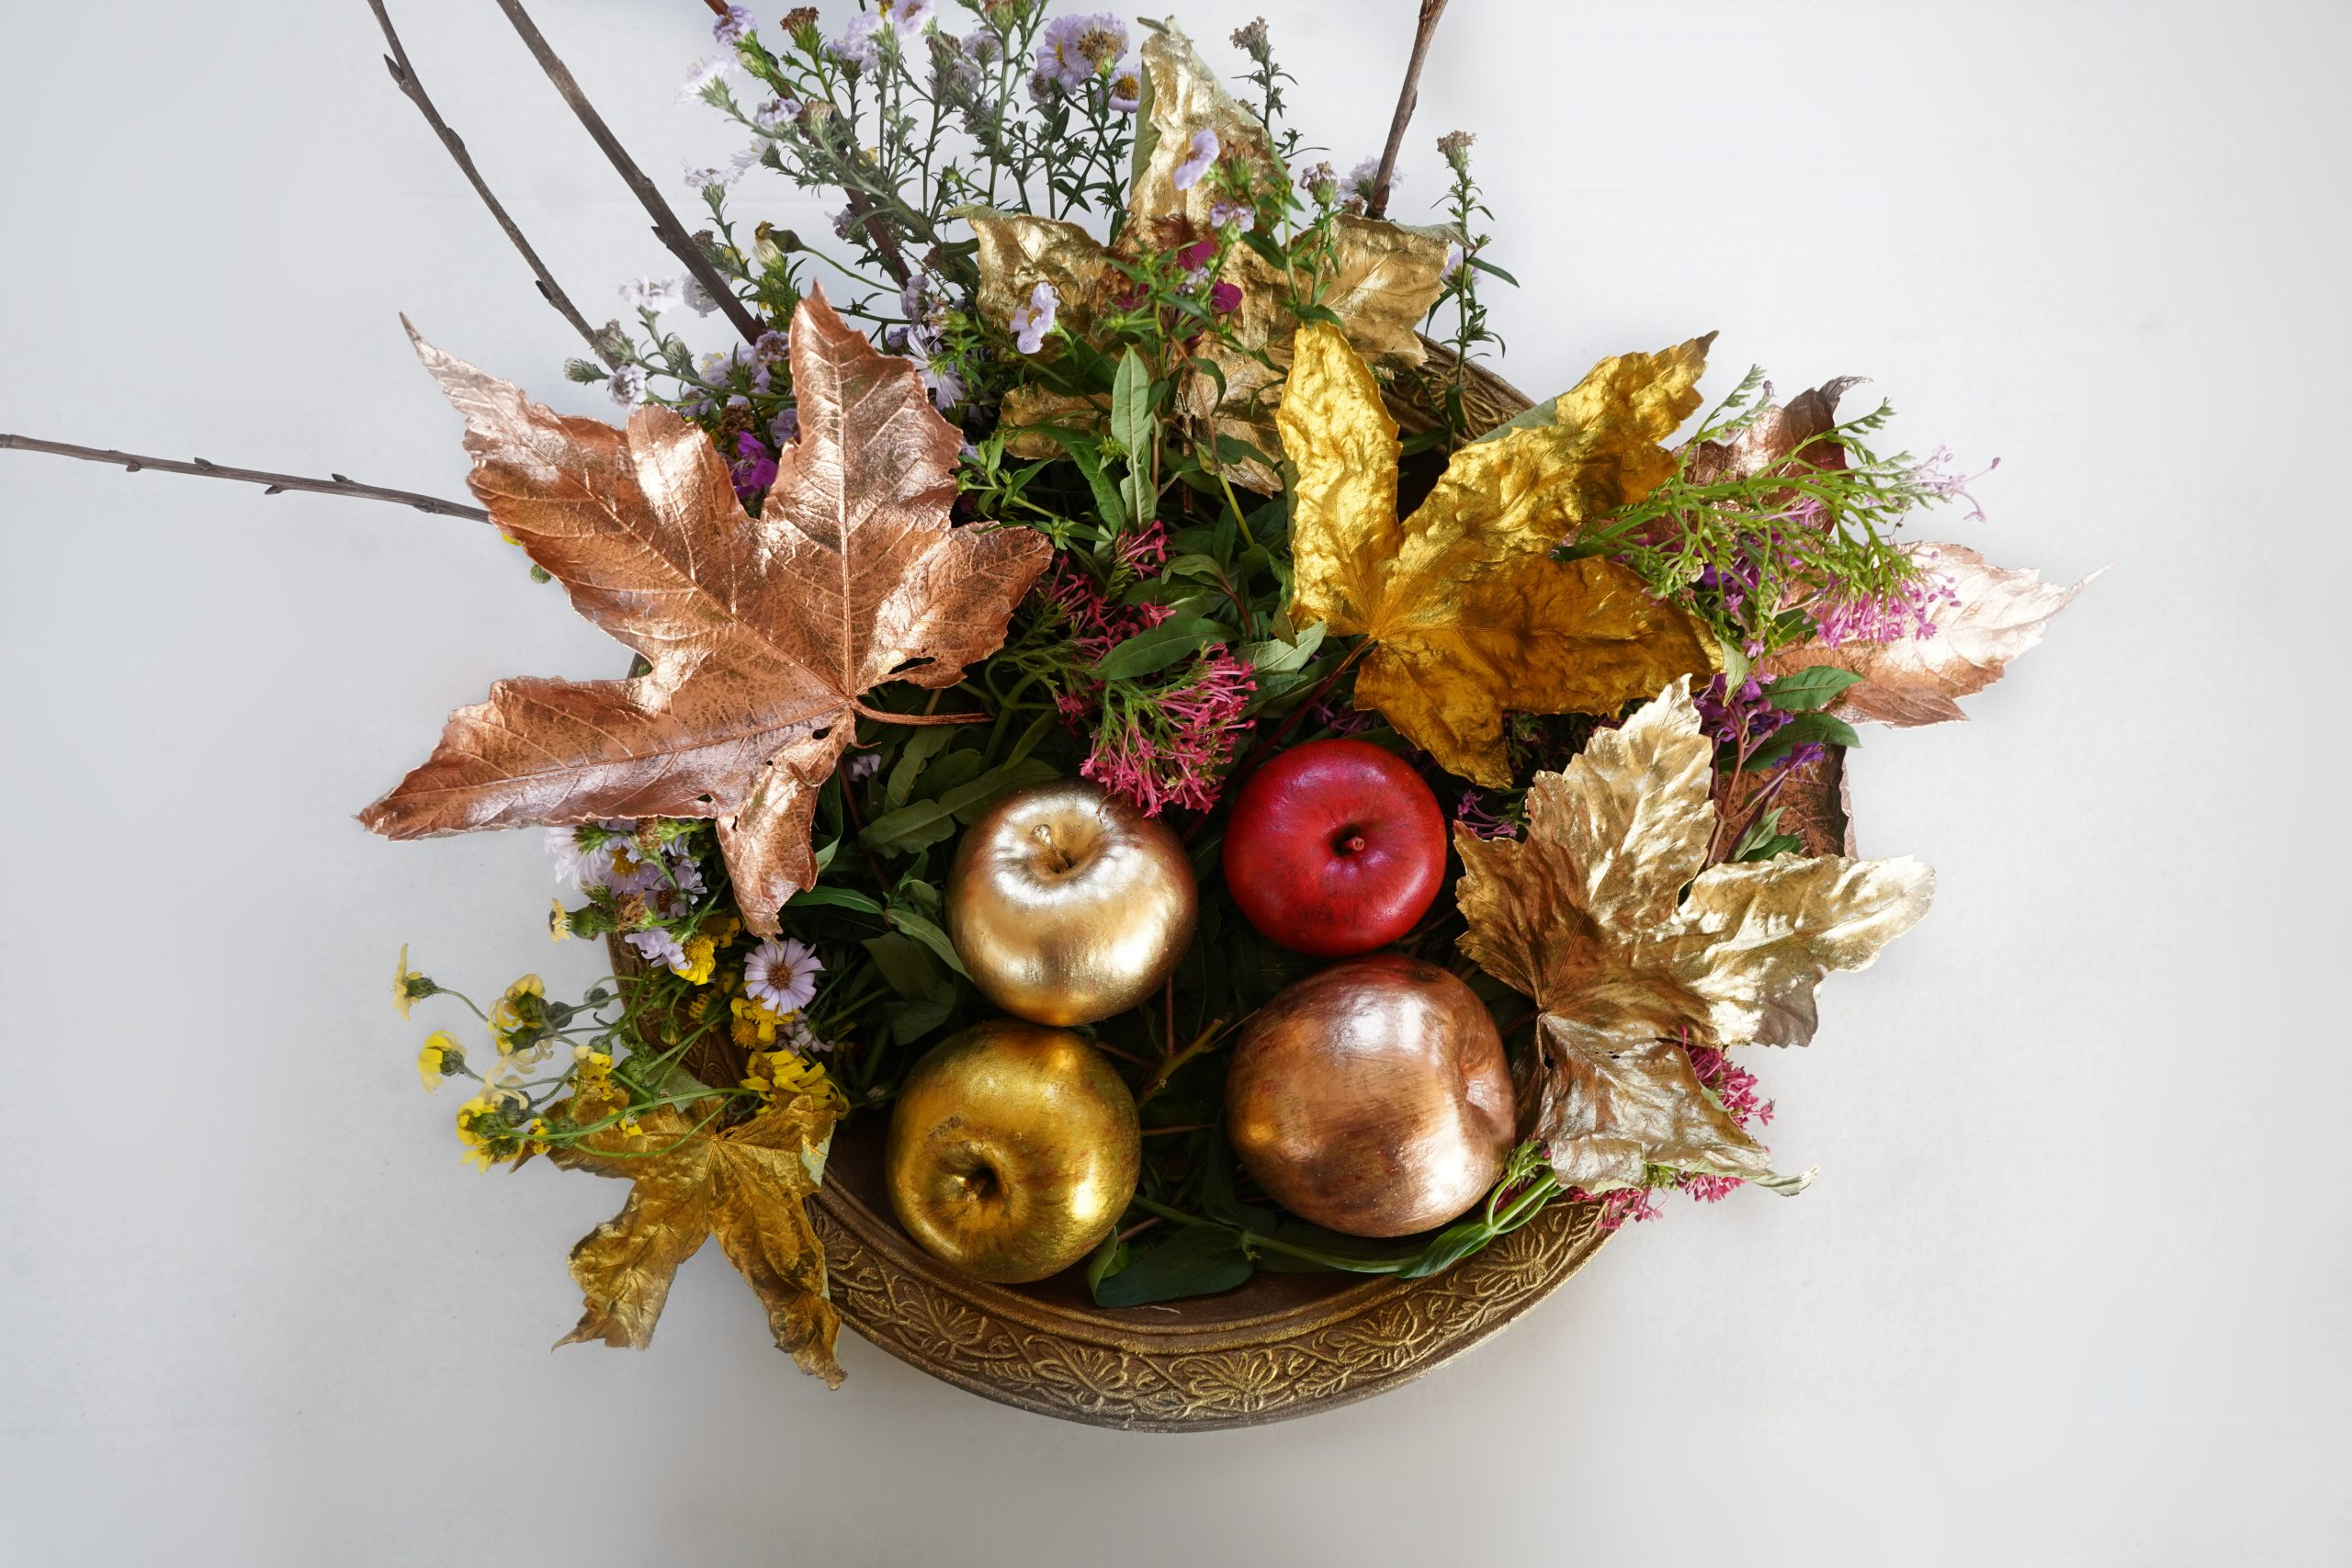 A collection of autumn craft ideas including painted leaves and apples together in a bowl.